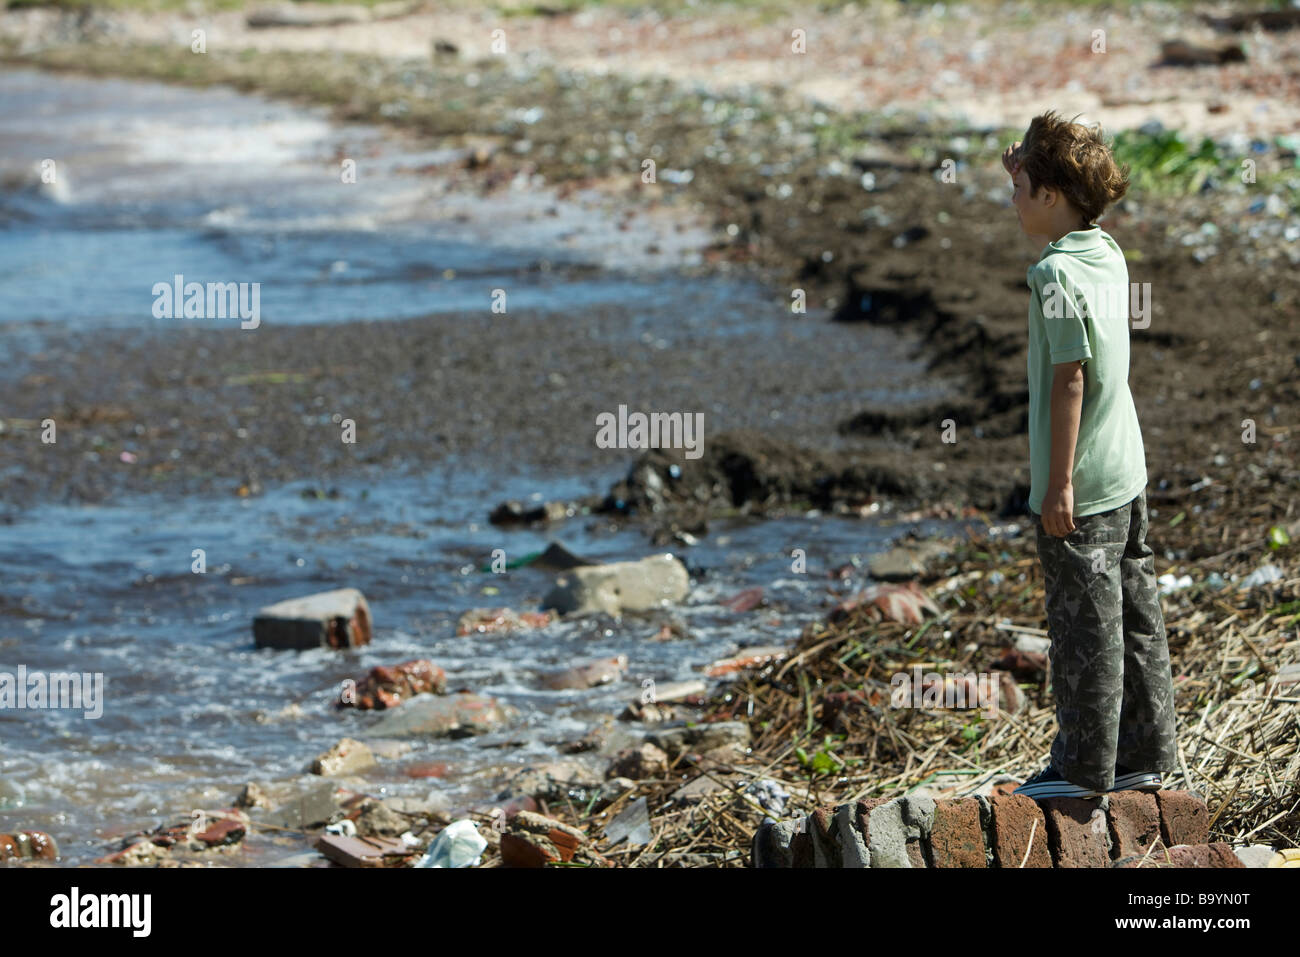 Boy standing on shore, looking out at polluted water - Stock Image